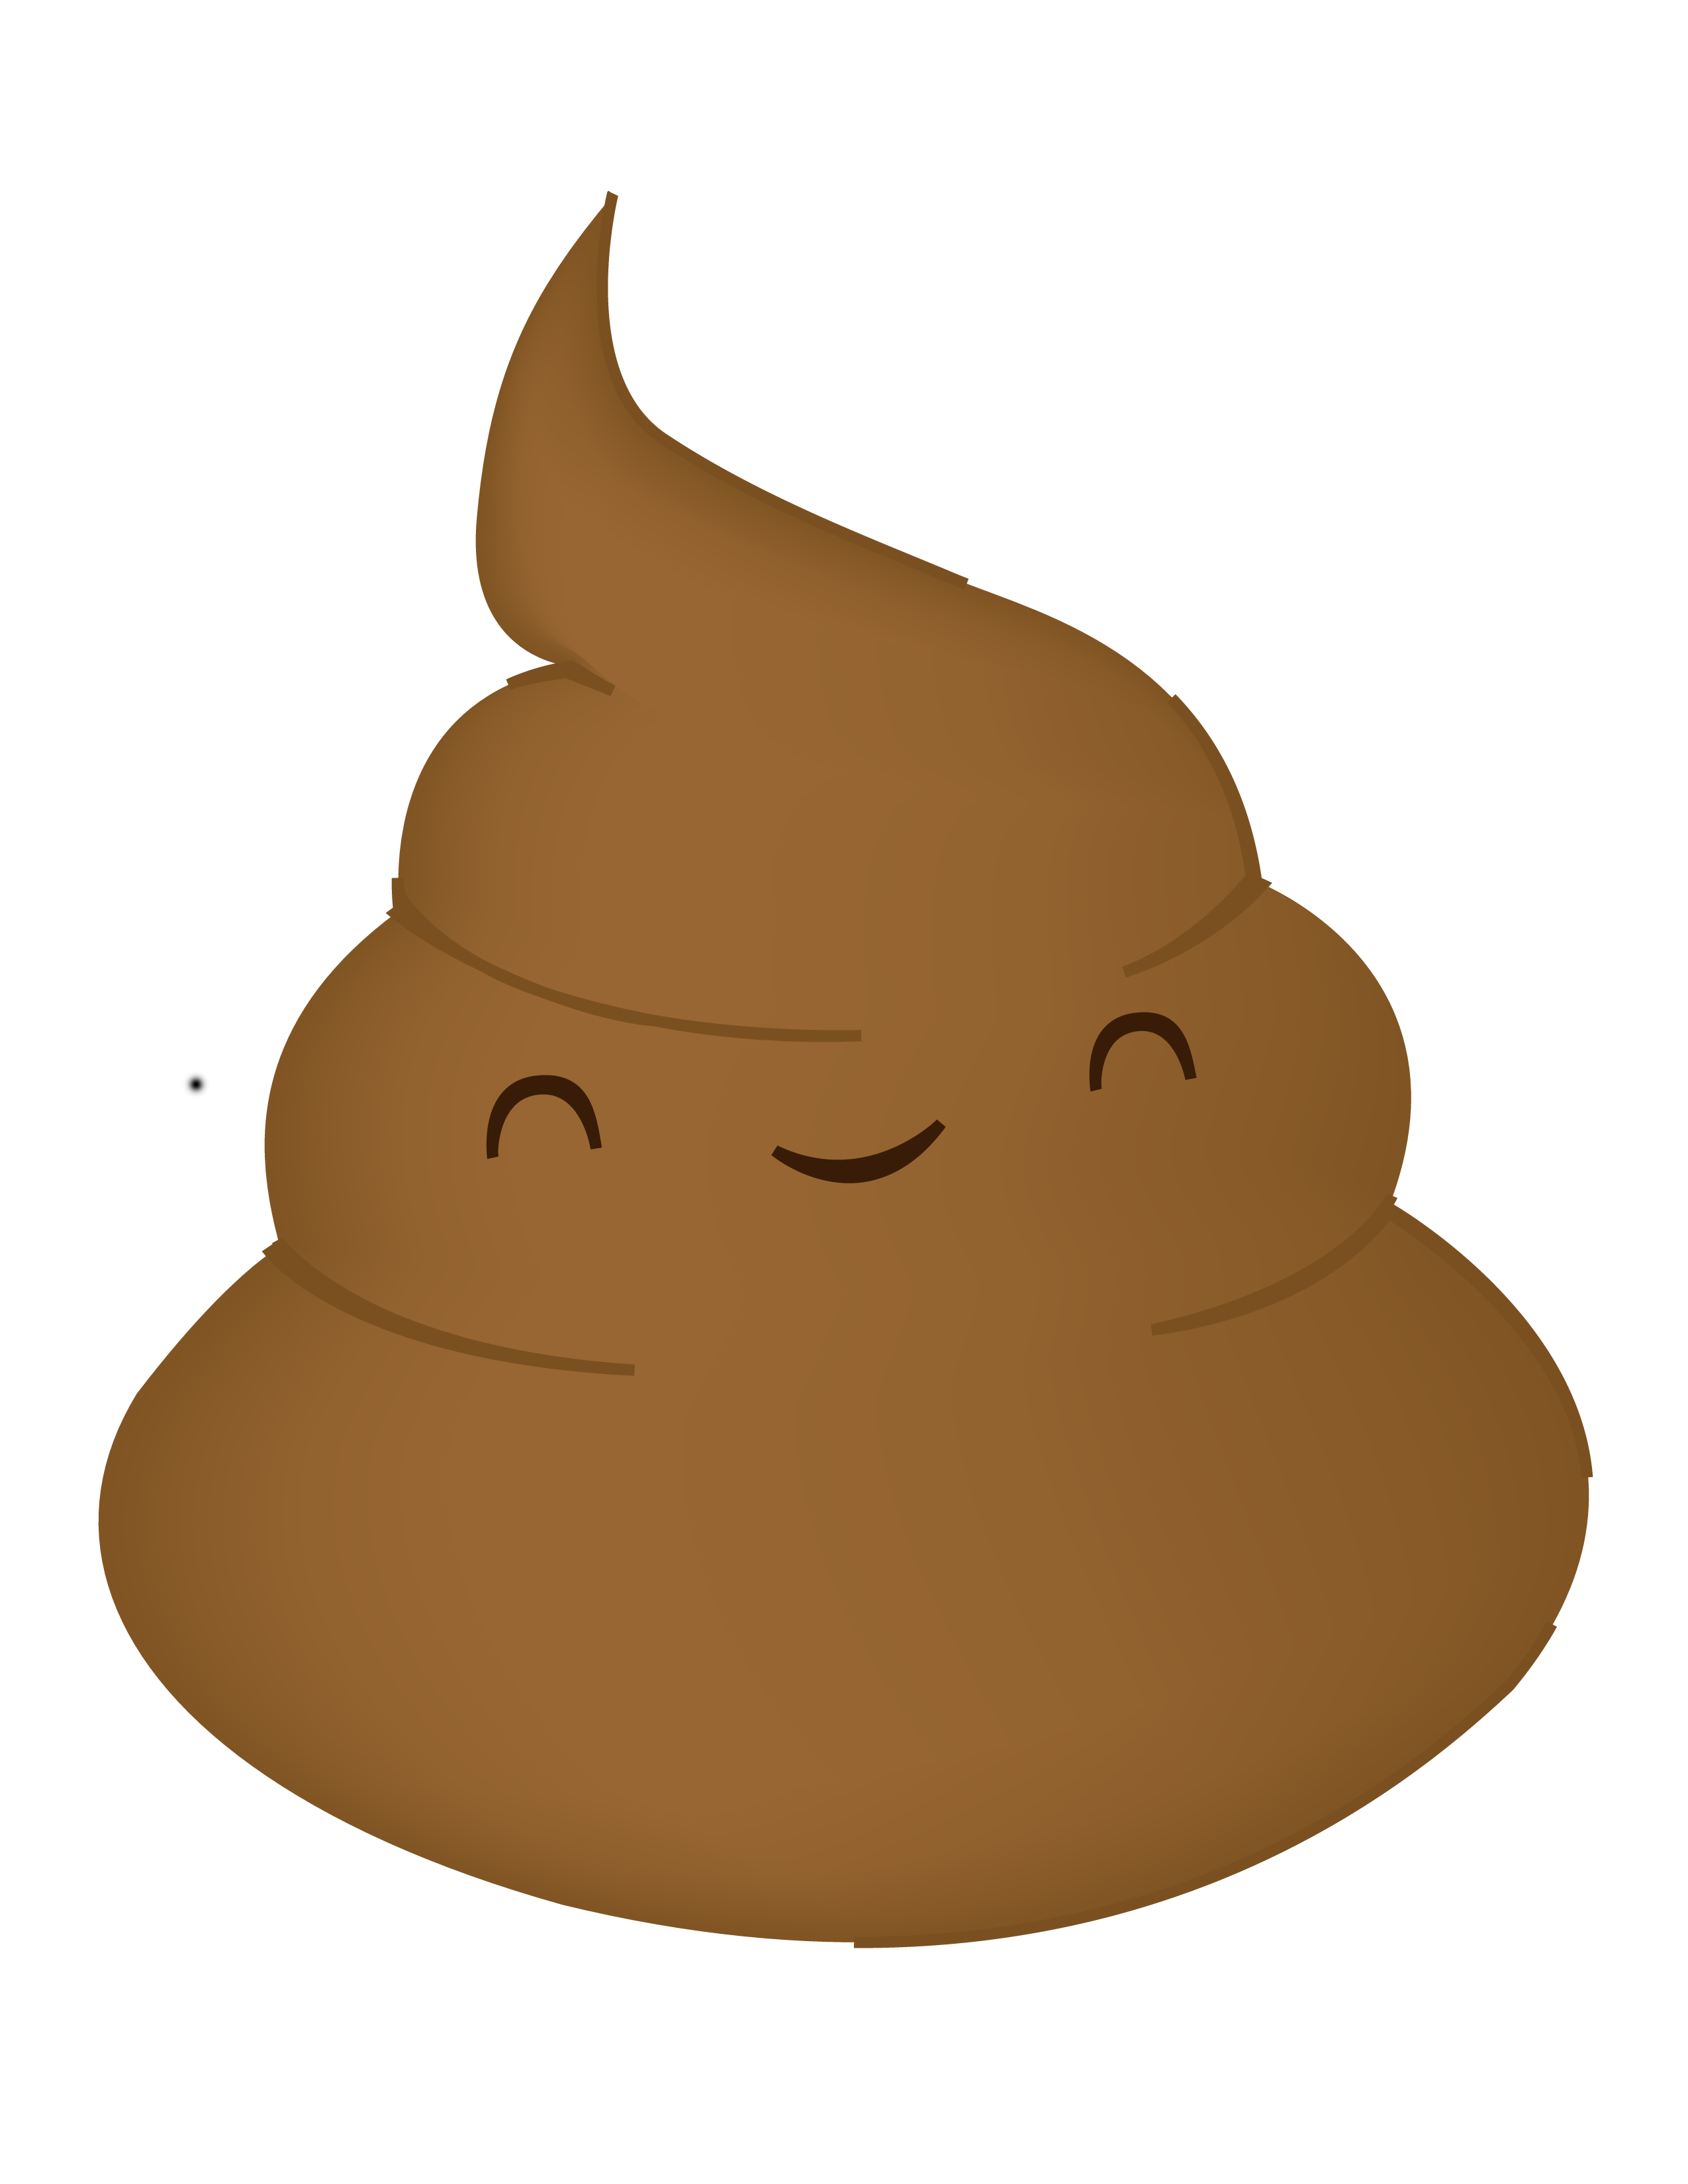 Poop clipart - Clipground